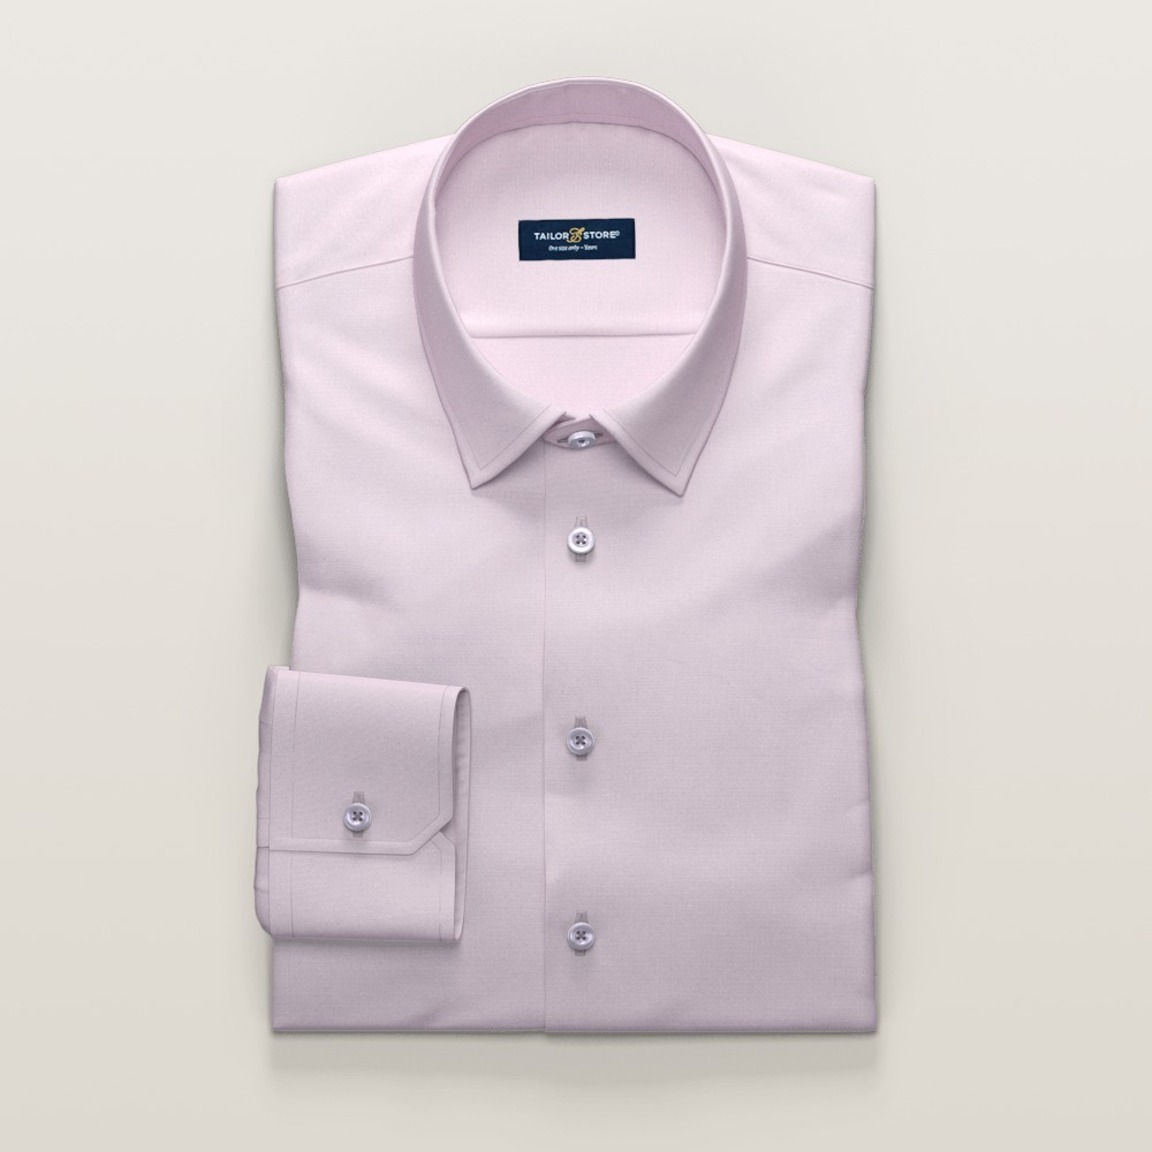 Ladies' business dress shirt in pink french oxford